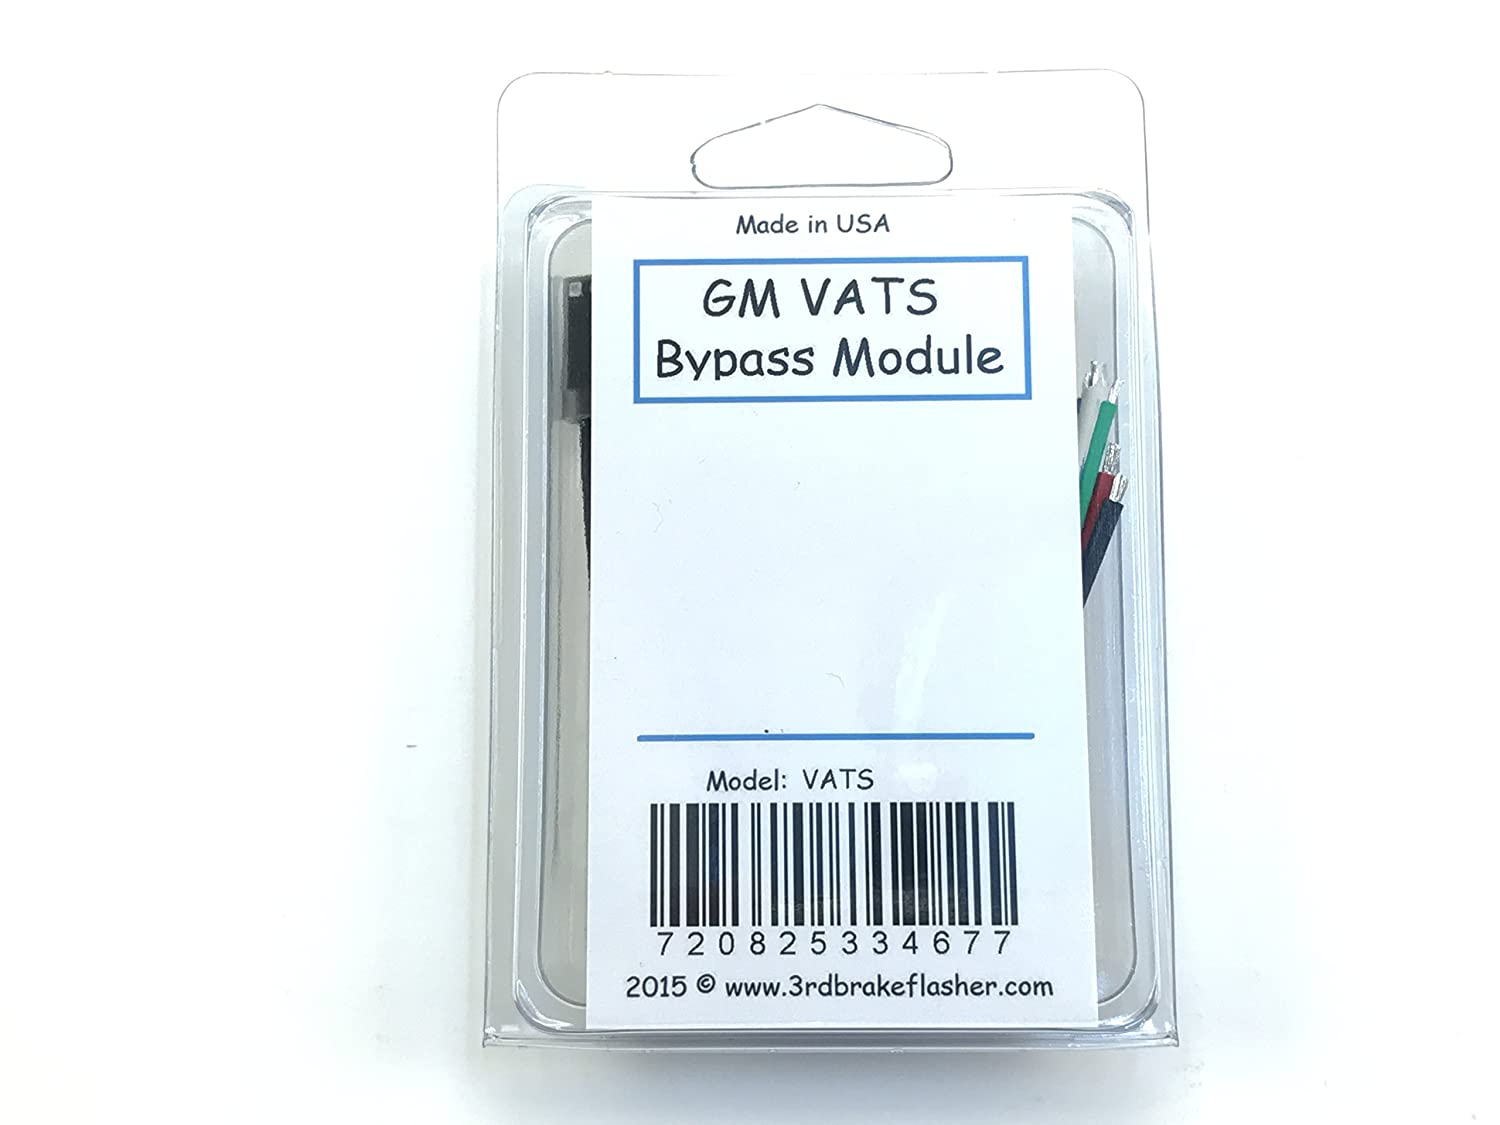 Gm Vats Passkey Ii Bypass Module For Ls1 And Lt1 Wiring Diagram Painless Automotive